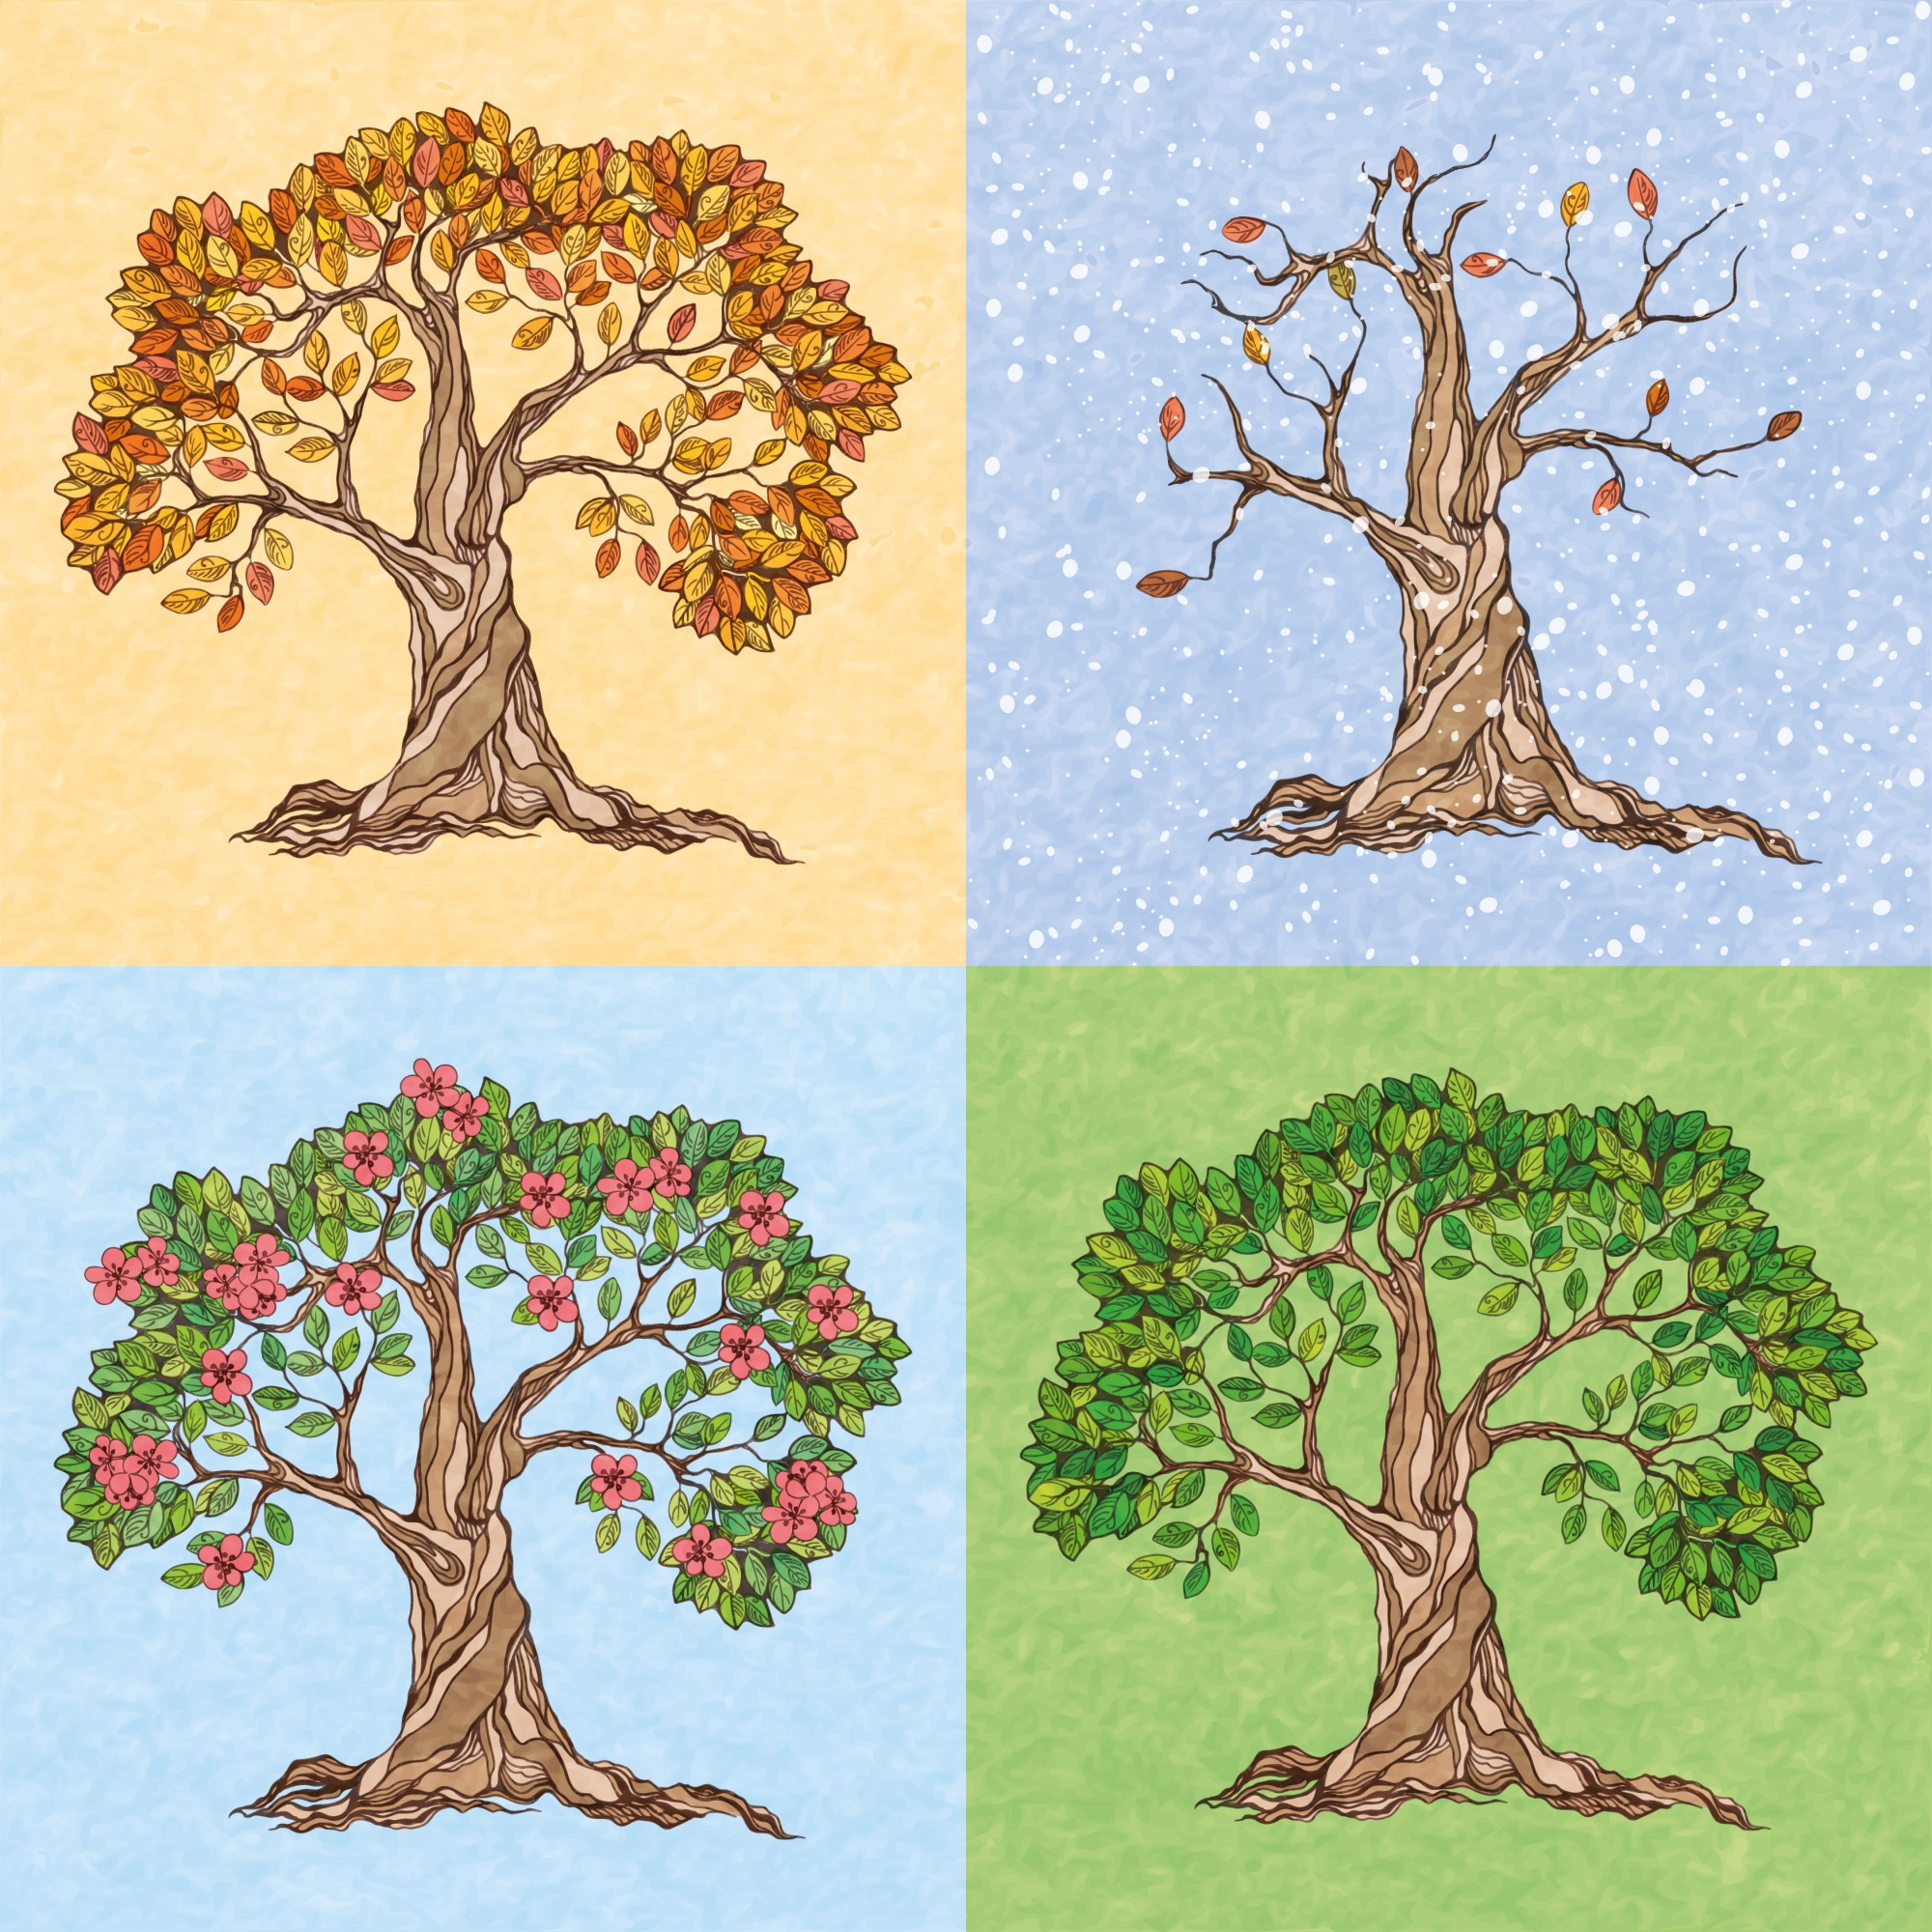 Four seasons summer autumn winter spring  tree wallpaper vector illustration